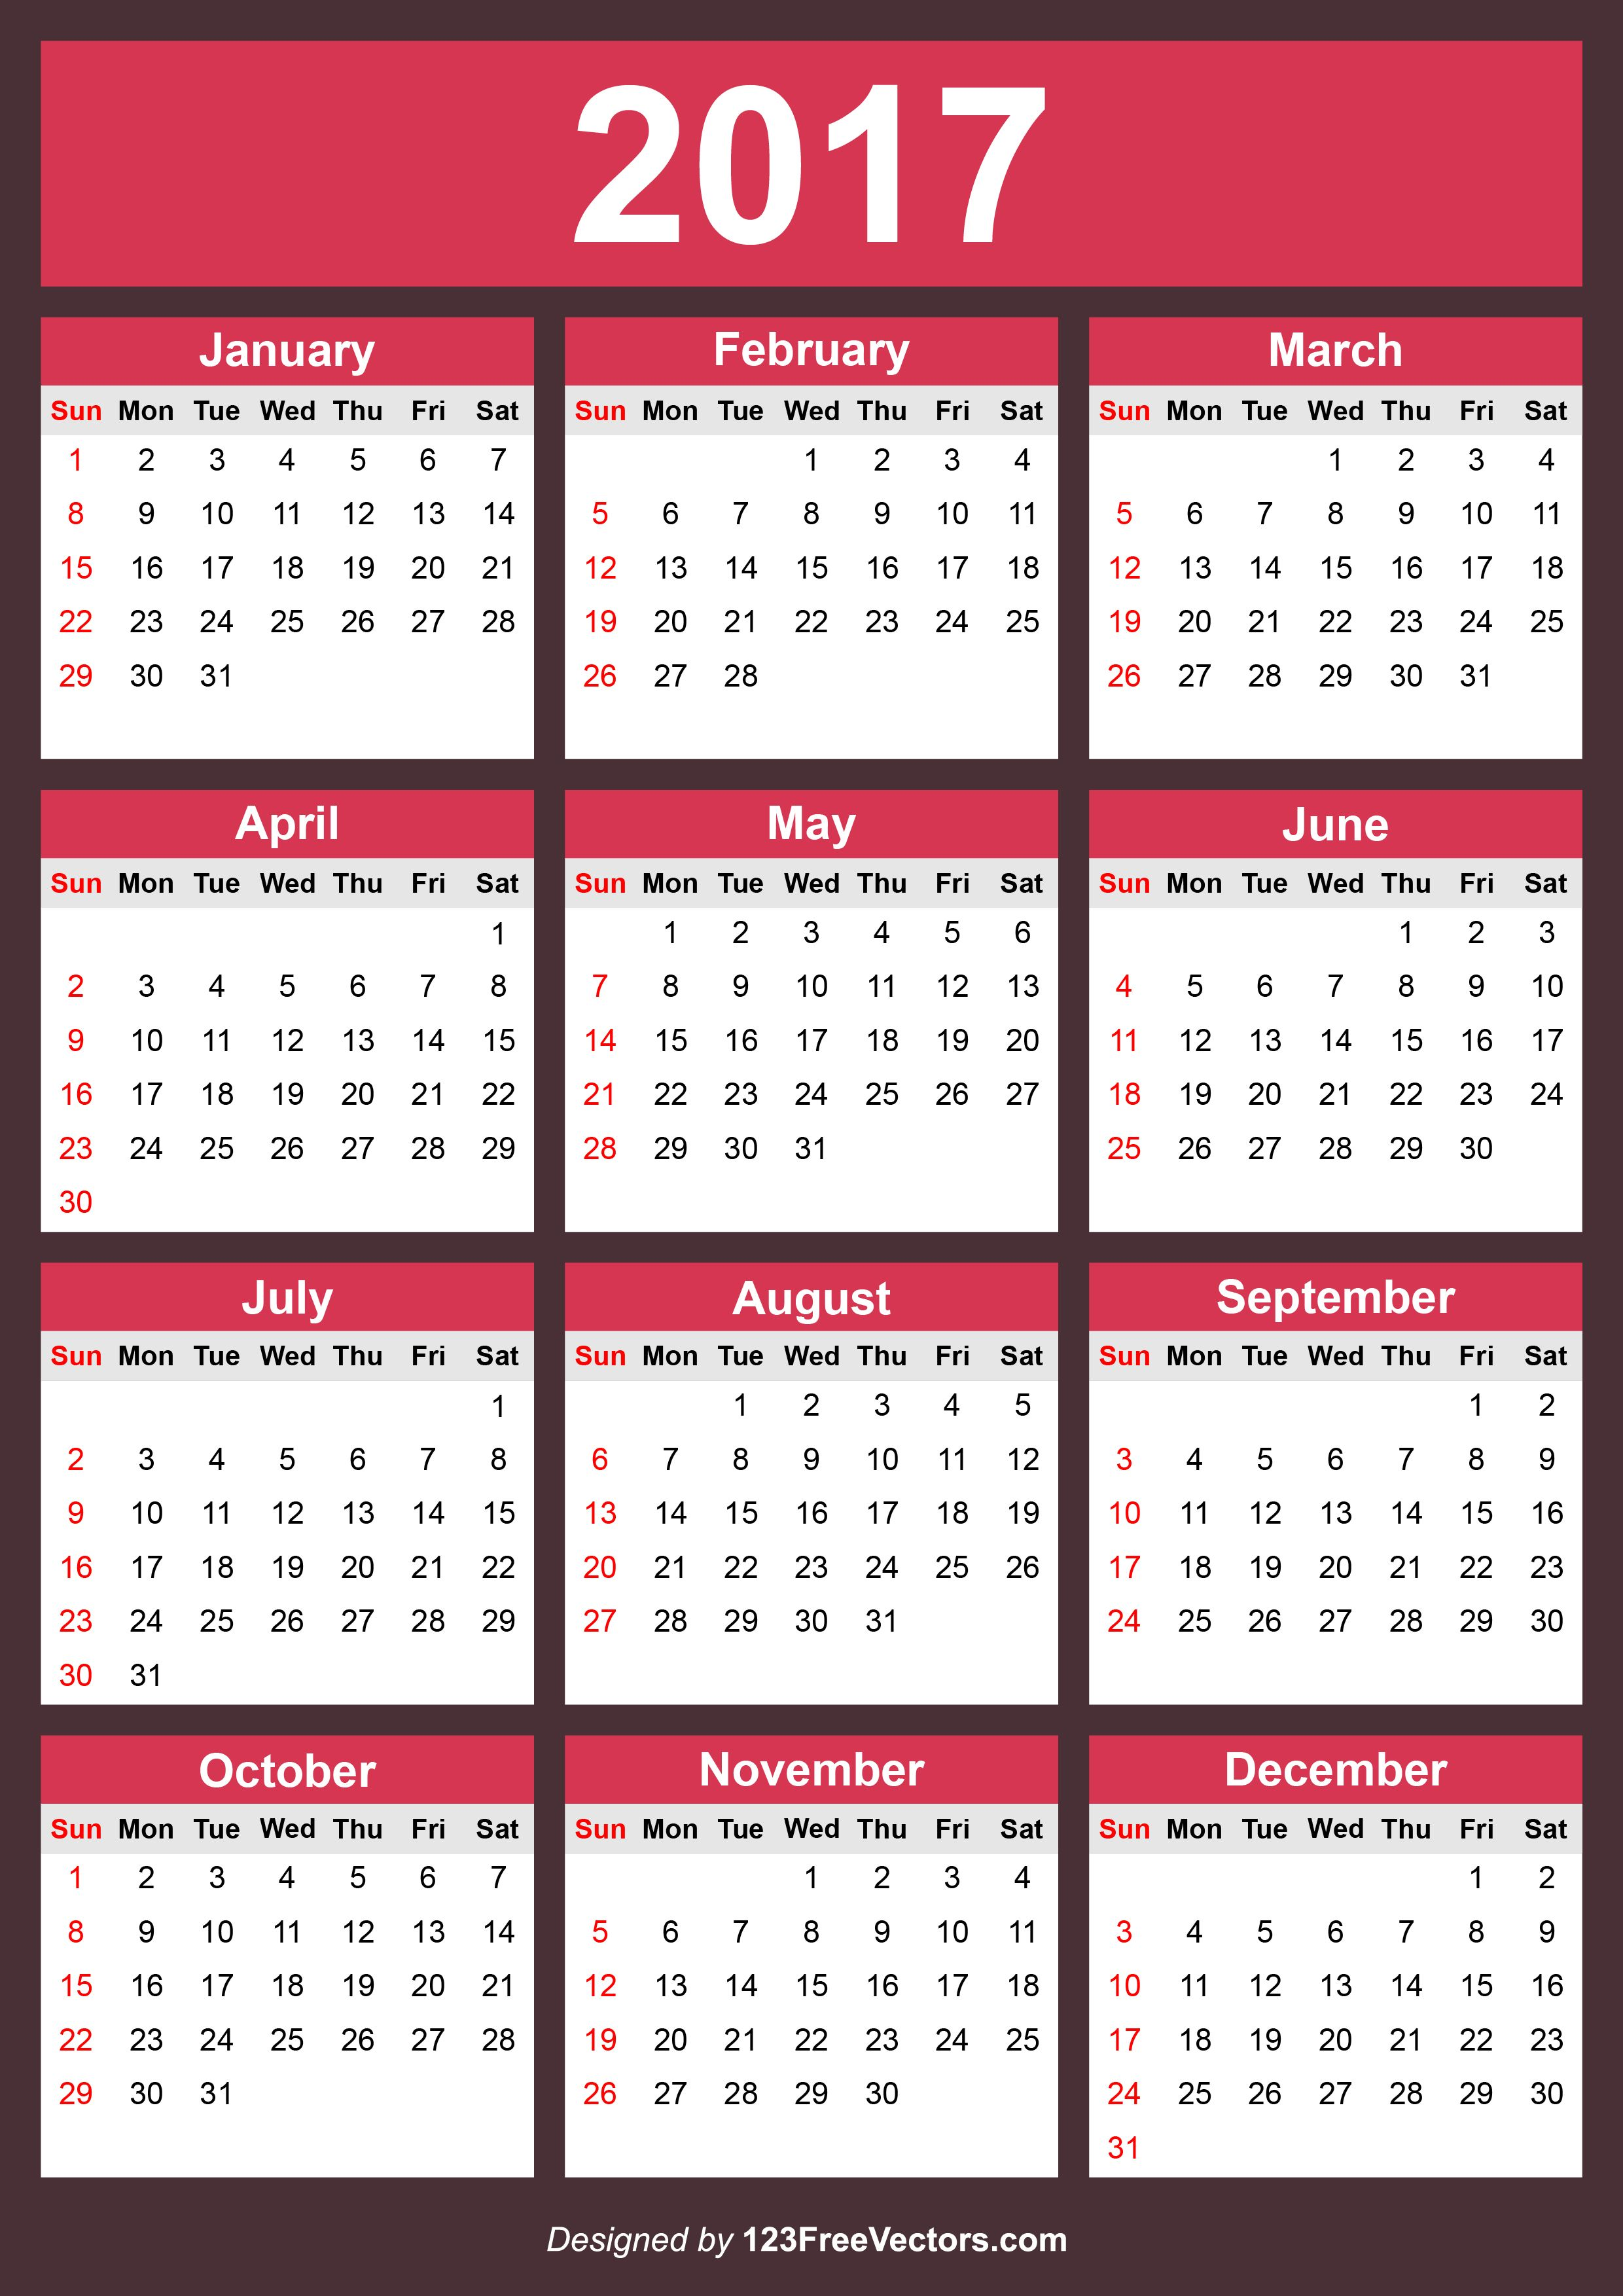 Free Editable 2017 Calendar Calendar calendar 2016 calendar and